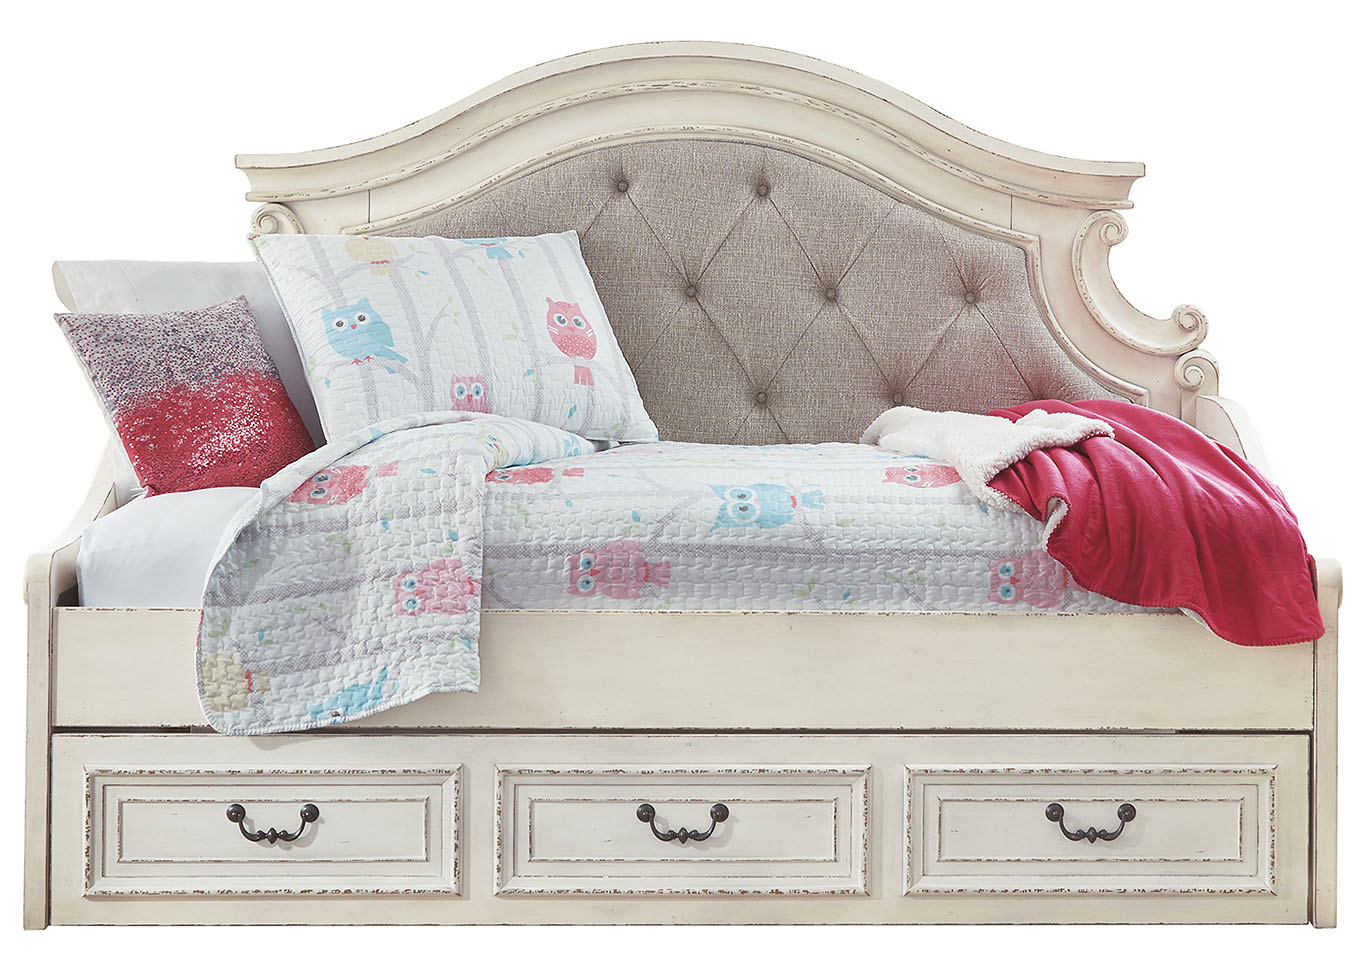 Realyn Twin Day Bed With Storage Ashley Furniture Homestore Independently Owned And Operated By Best Furn Appliances I